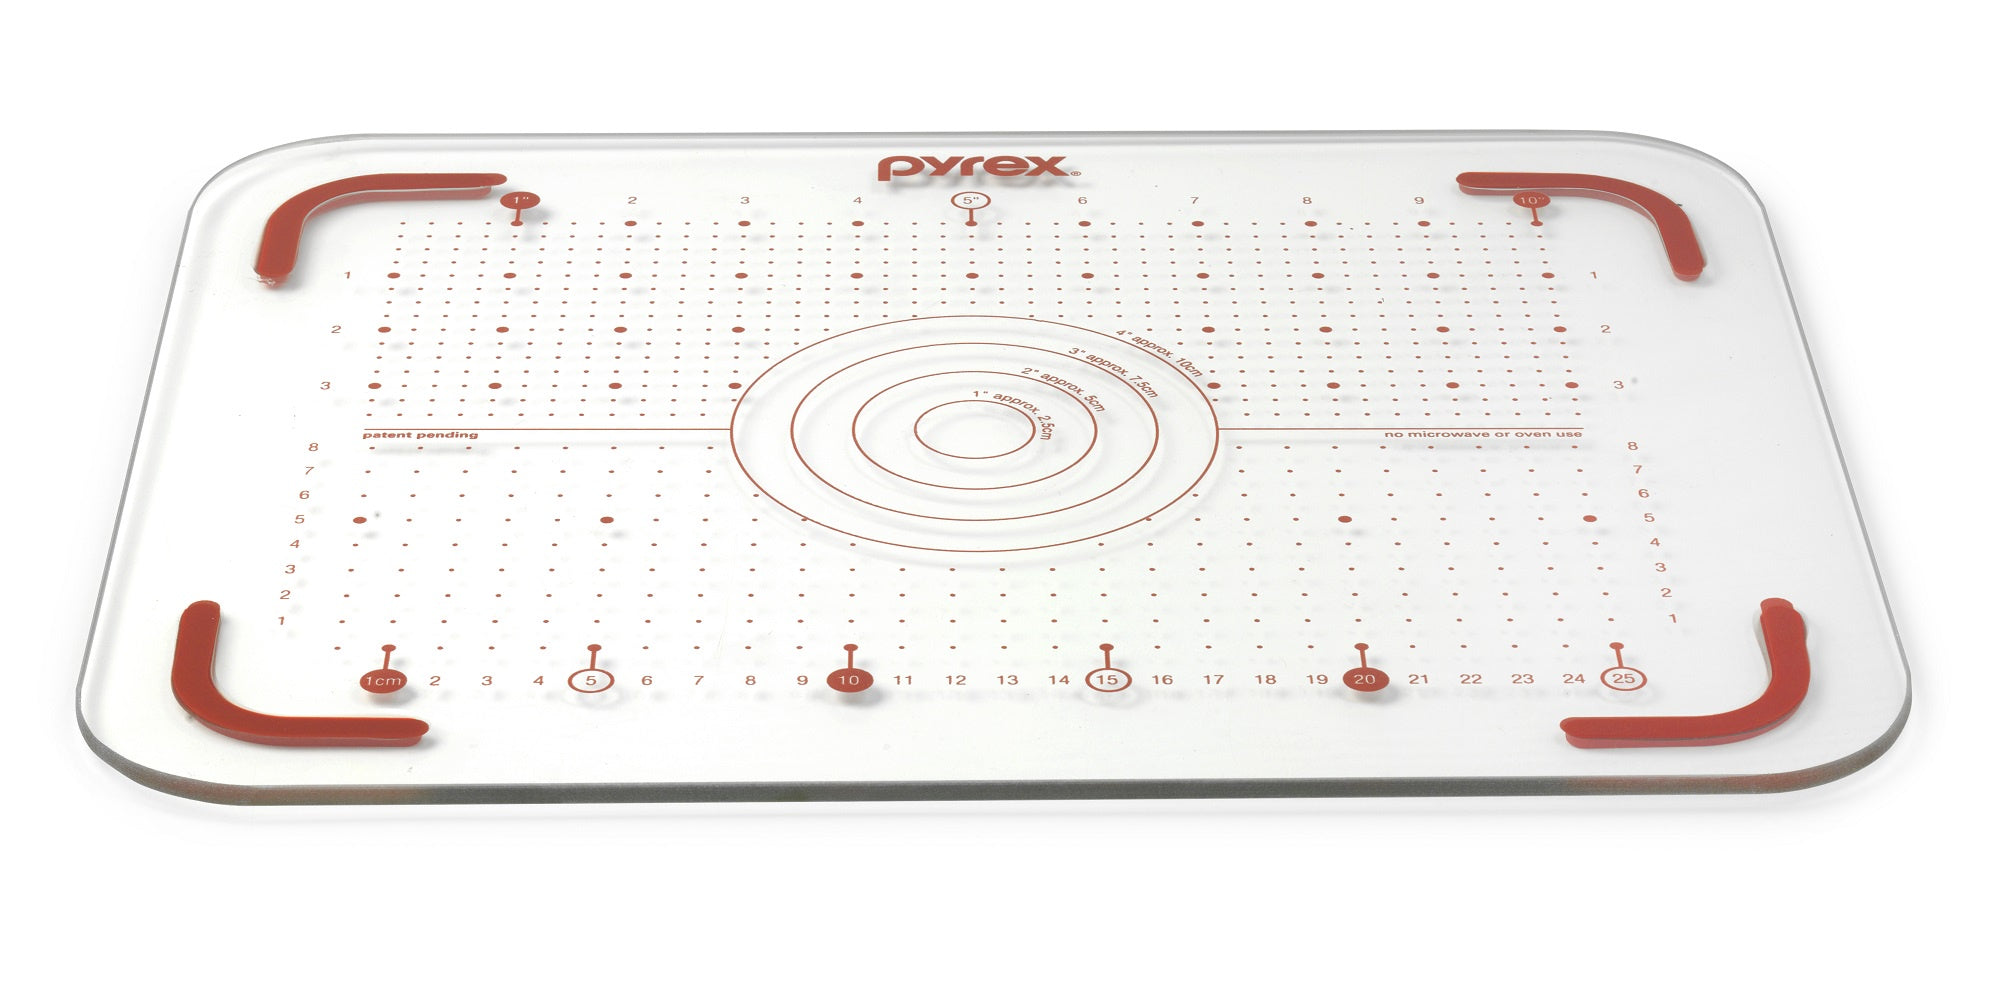 Pyrex T&G 28cm x 36cm Glass Cutting Board-1136077